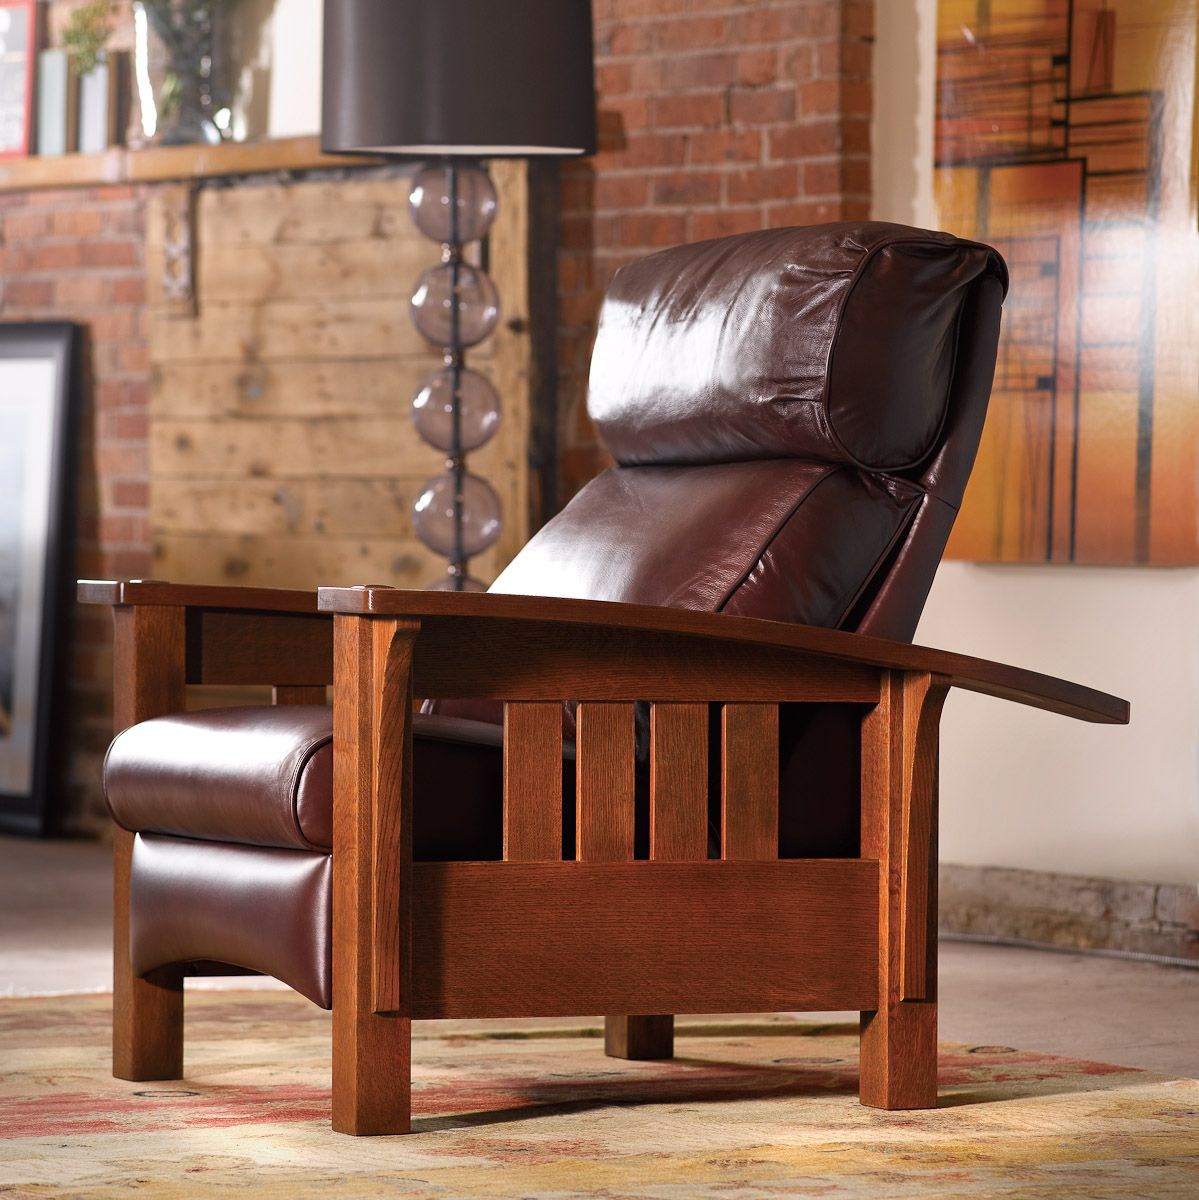 mission recliner chair plans luraco massage review stickley morris living in leather pinterest